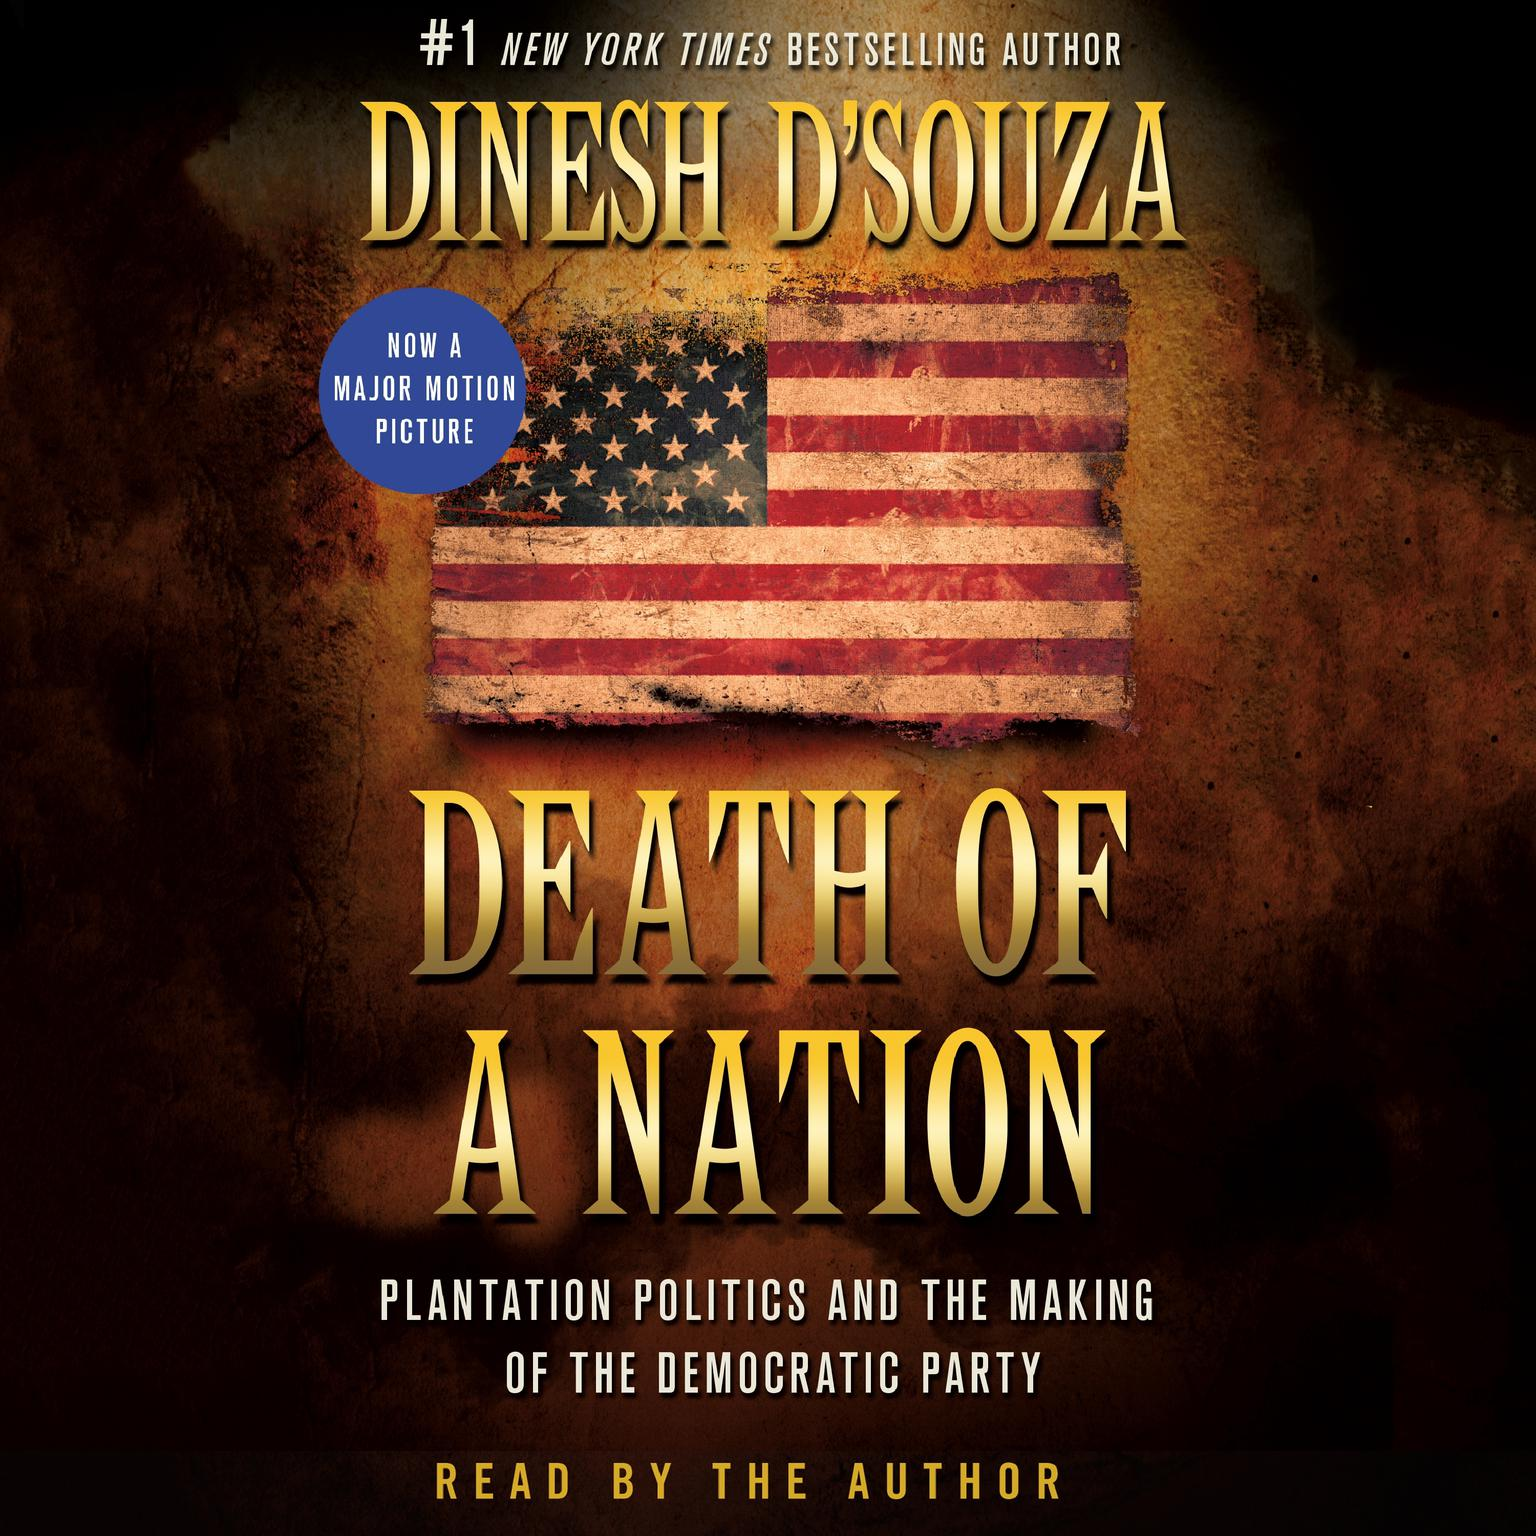 Printable Death of a Nation: Plantation Politics and the Making of the Democratic Party Audiobook Cover Art